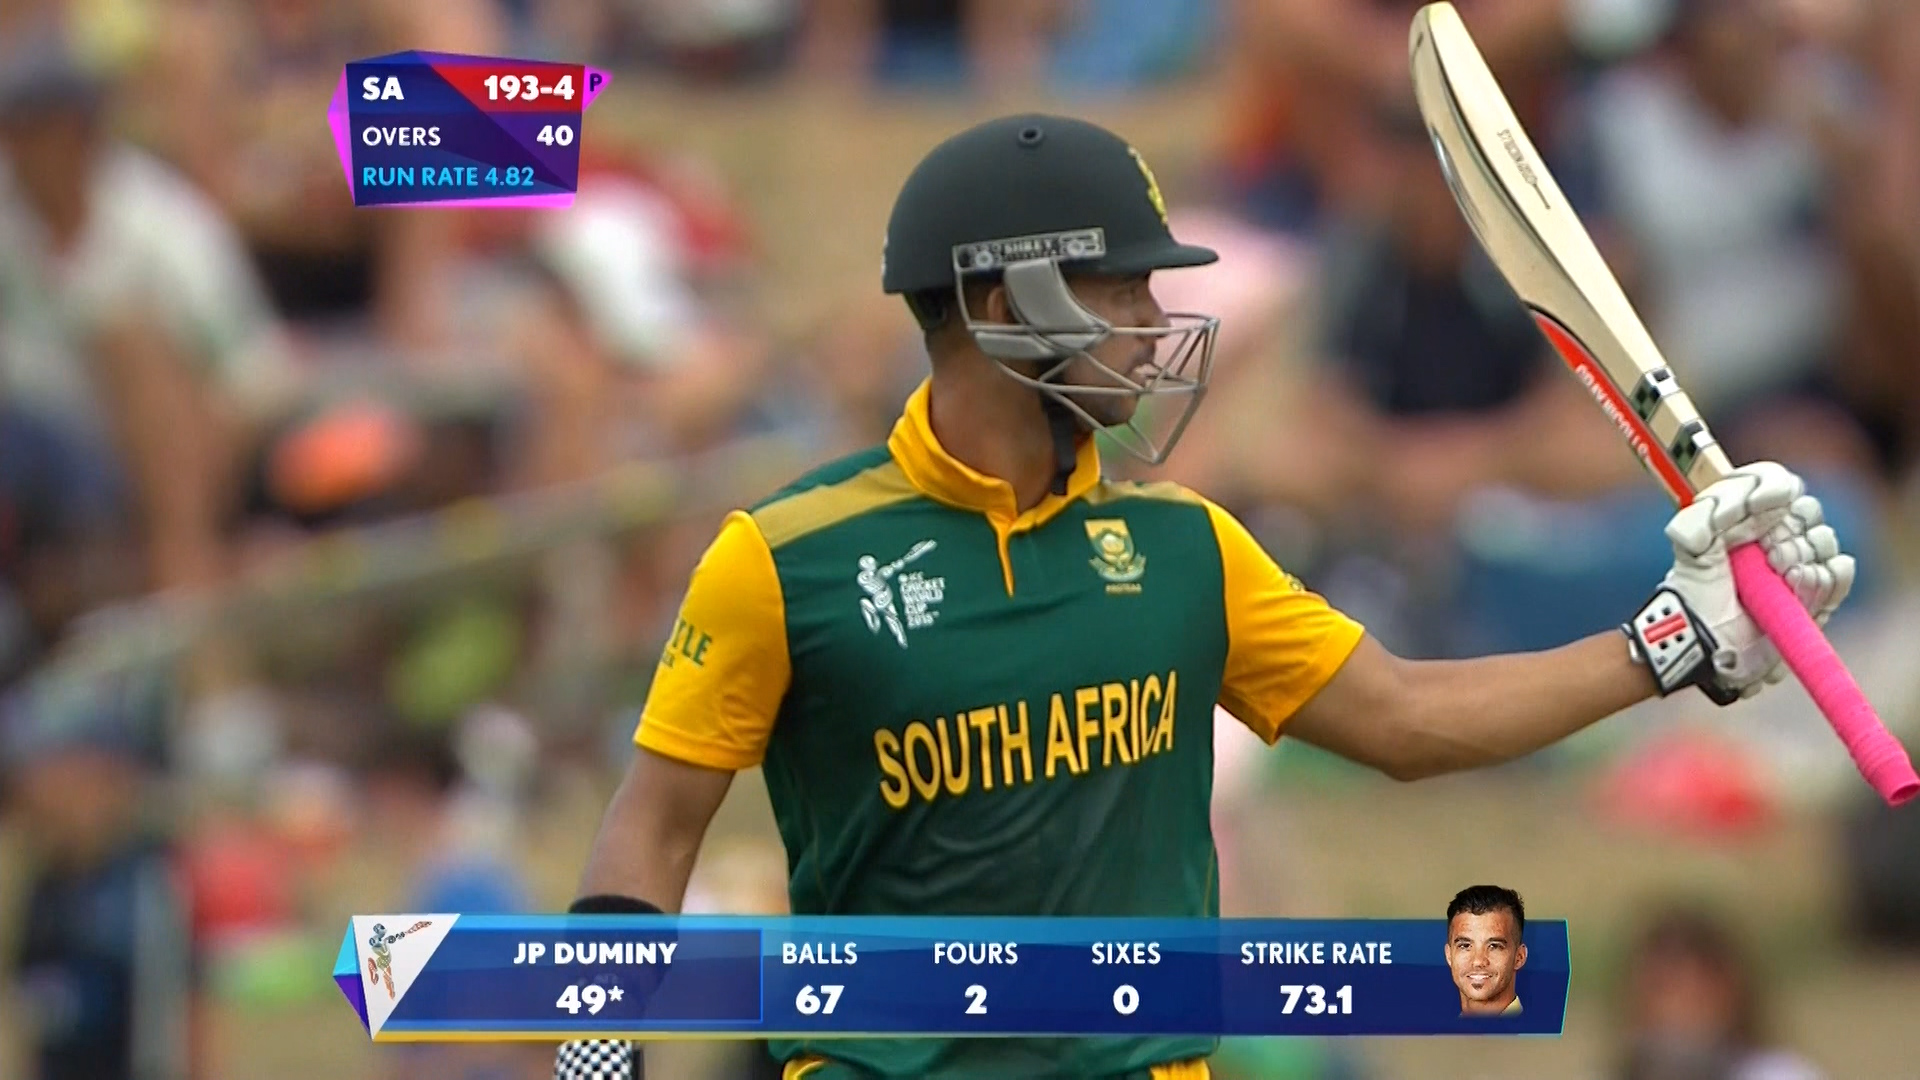 Destructive Duminy – SA vs ZIM